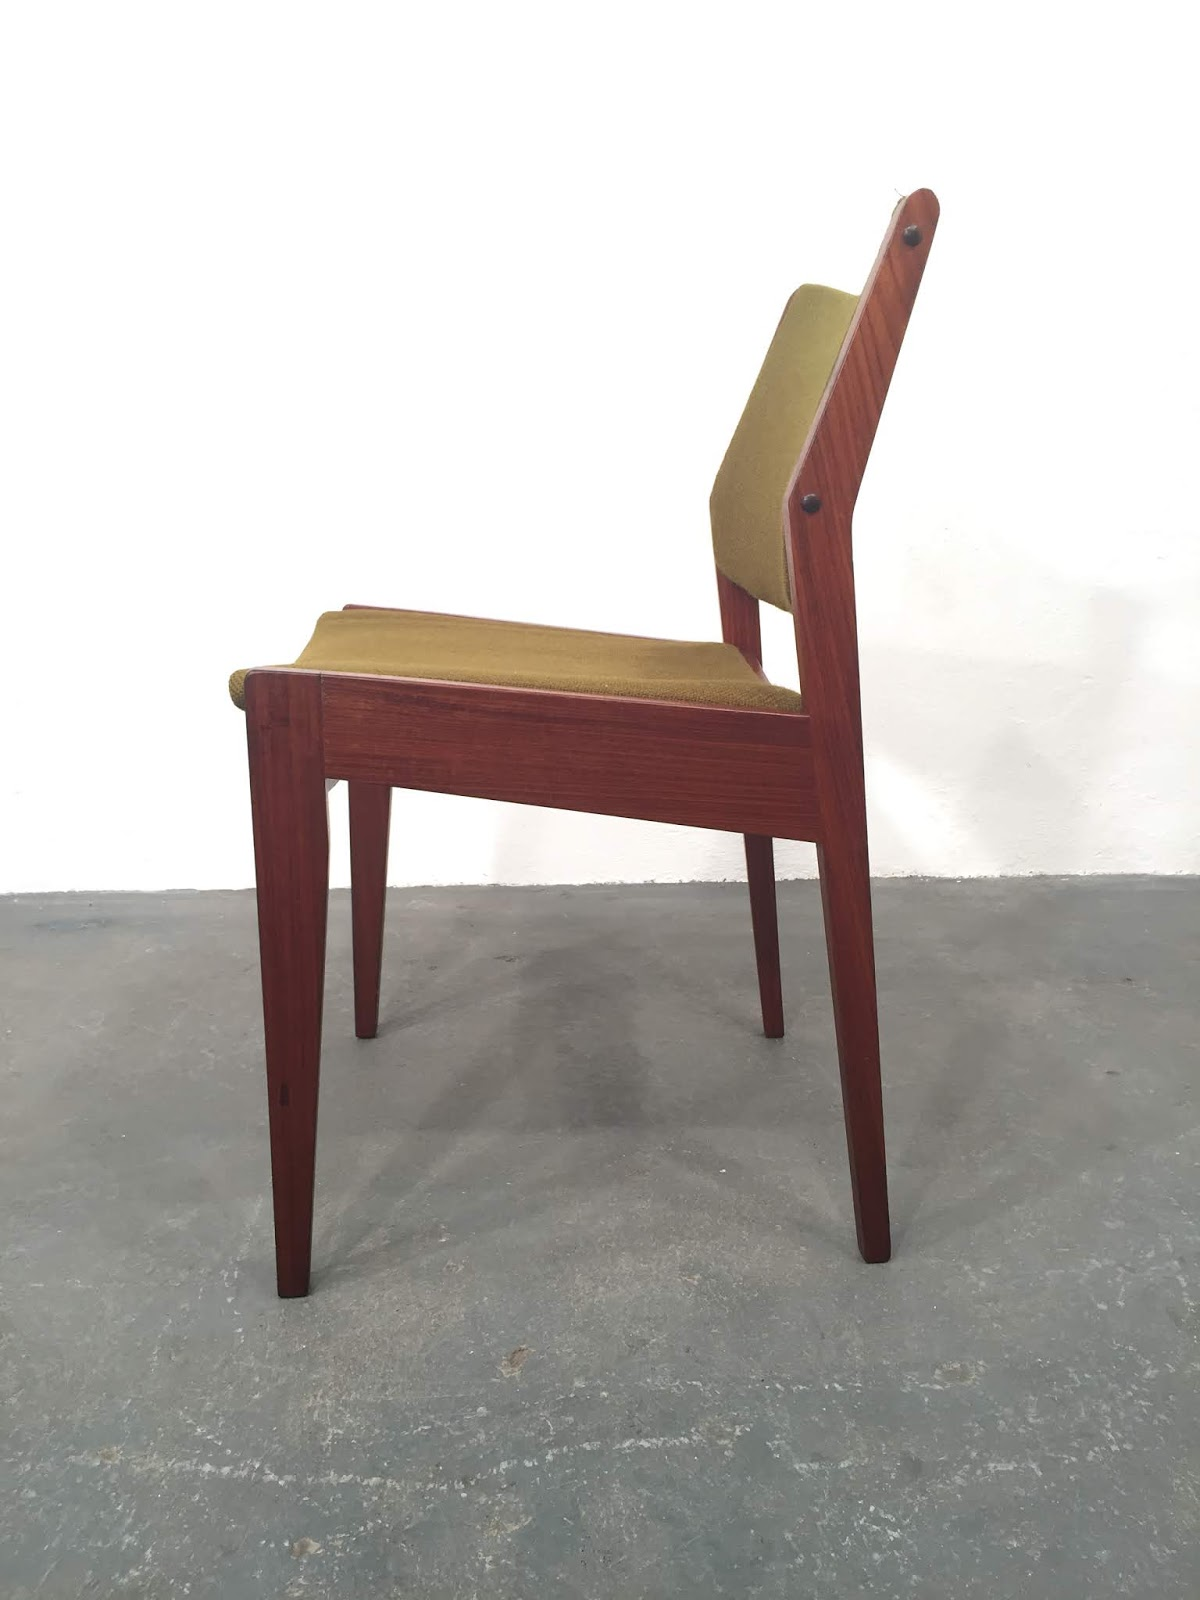 retro dining chairs ireland hanging upside down chair for back vintage furniture ocd